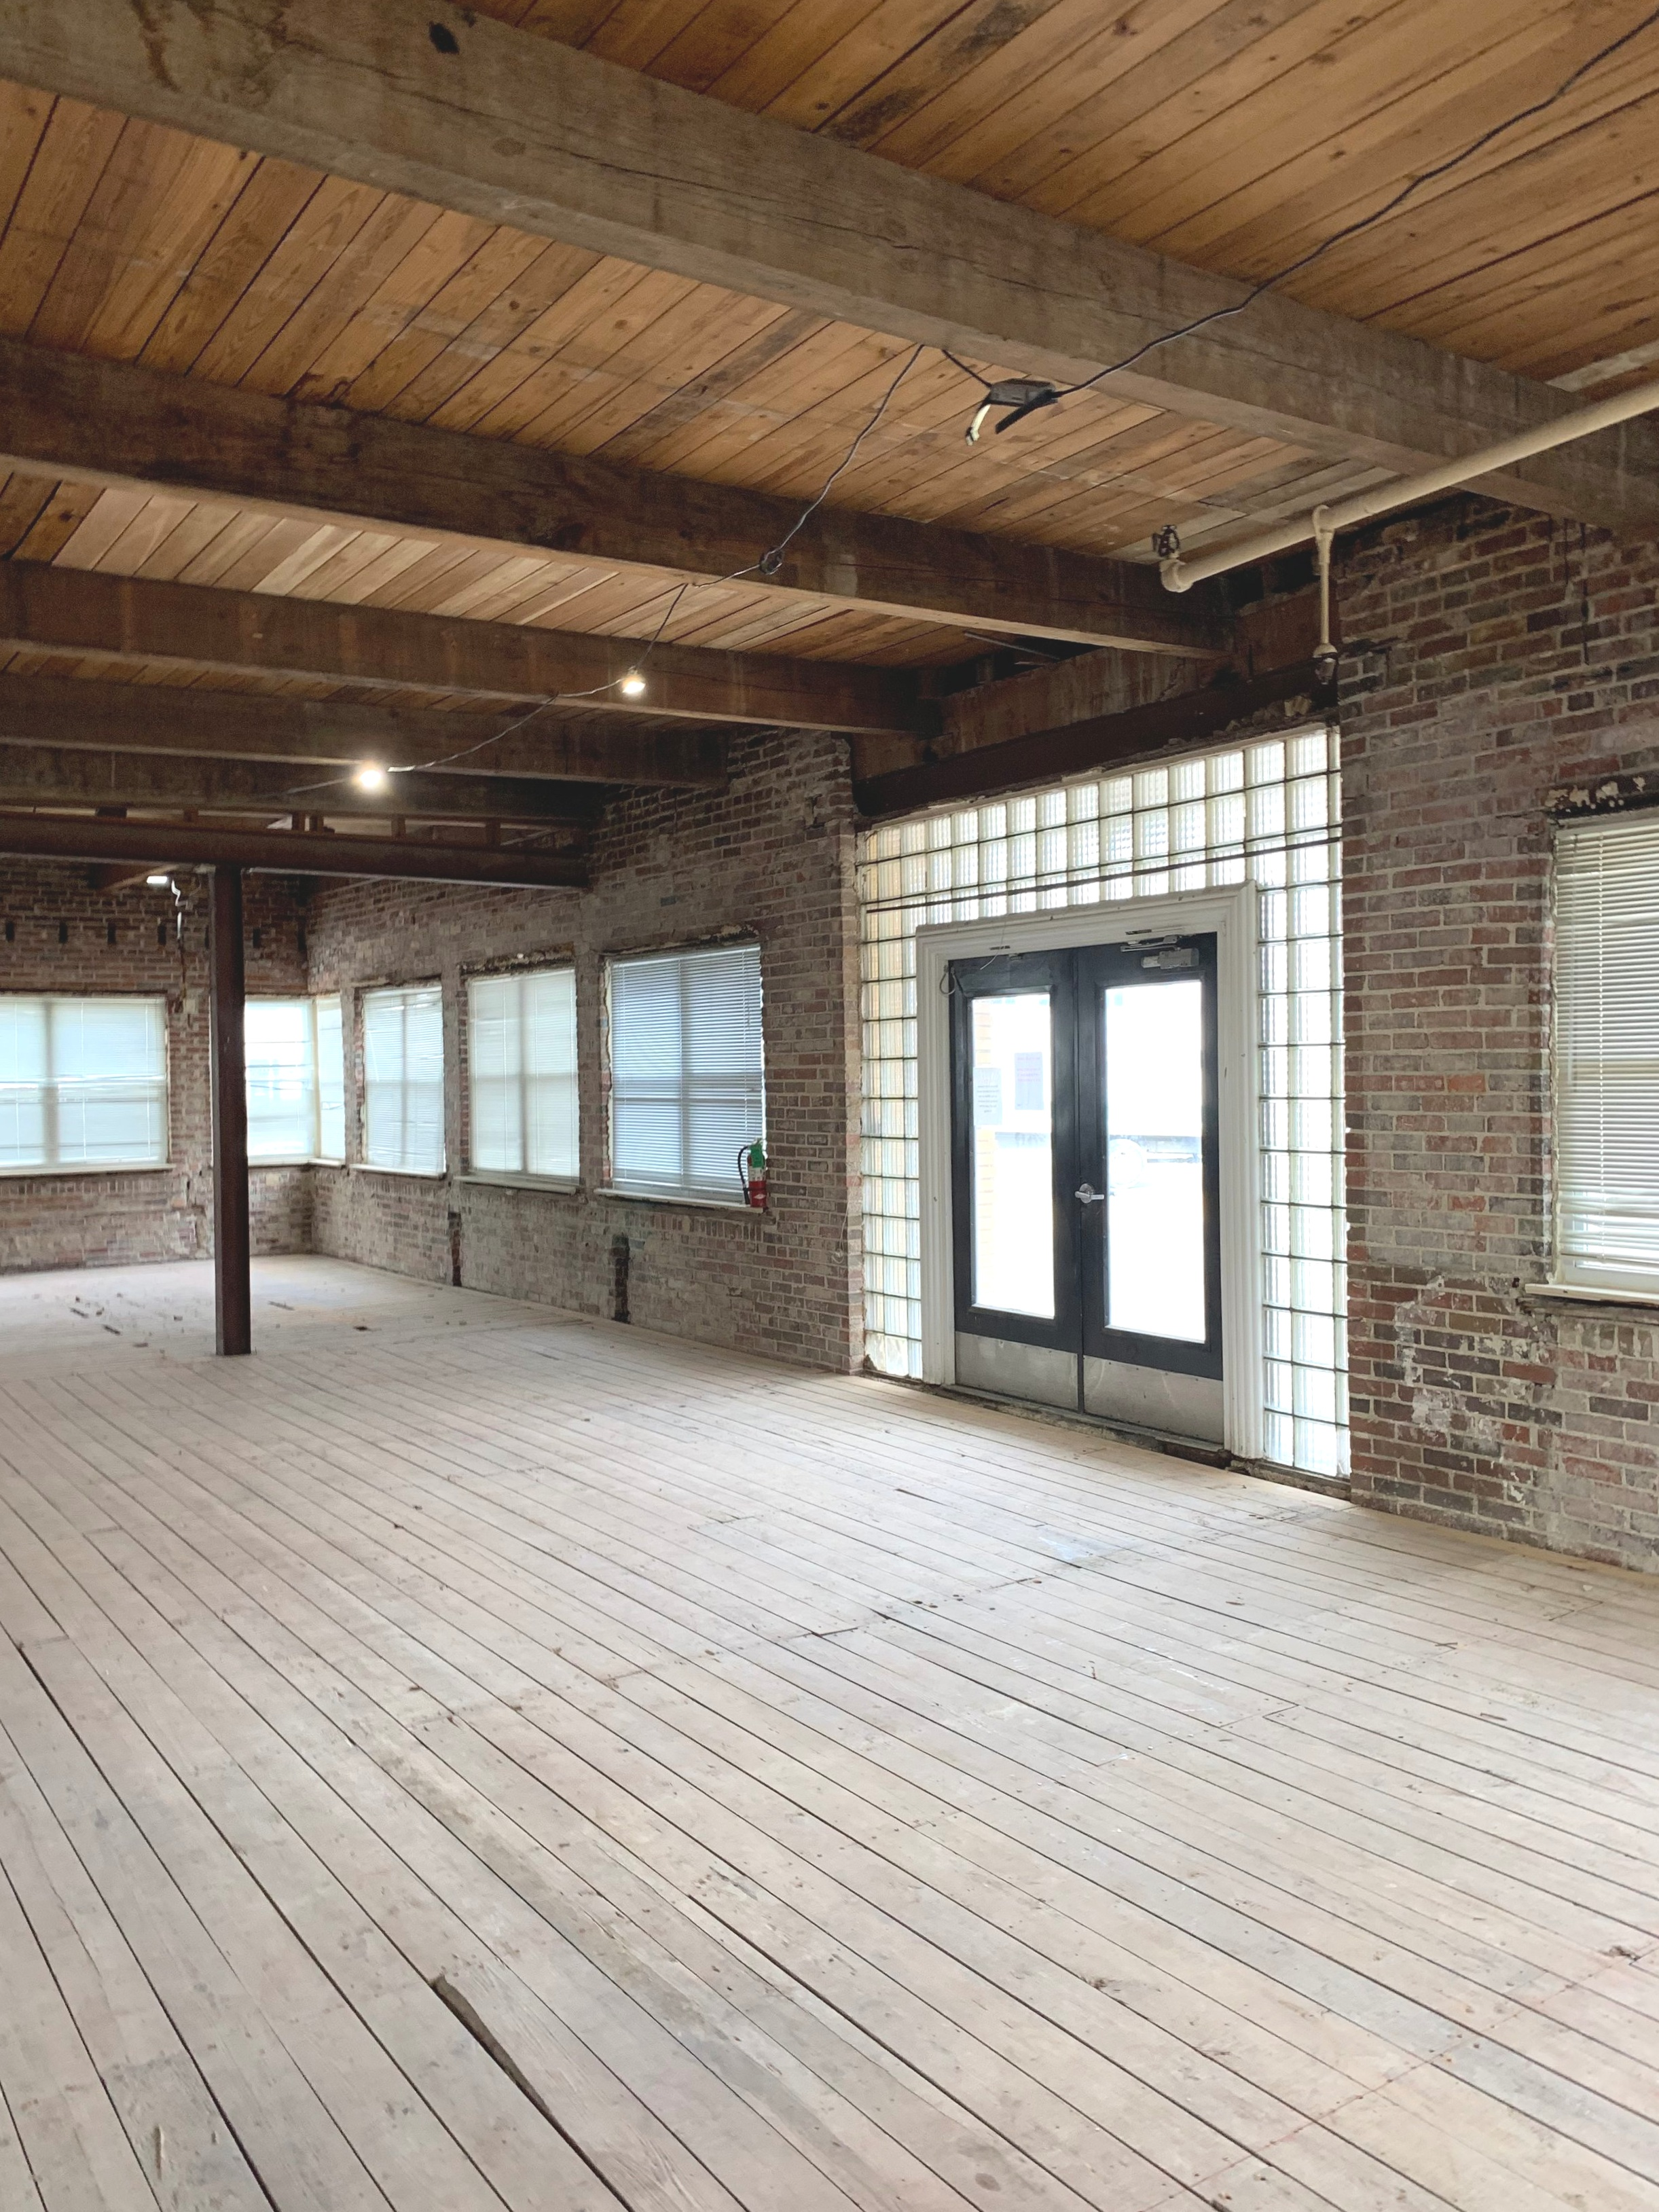 Existing space: original wood floors, brick and timber roof structure